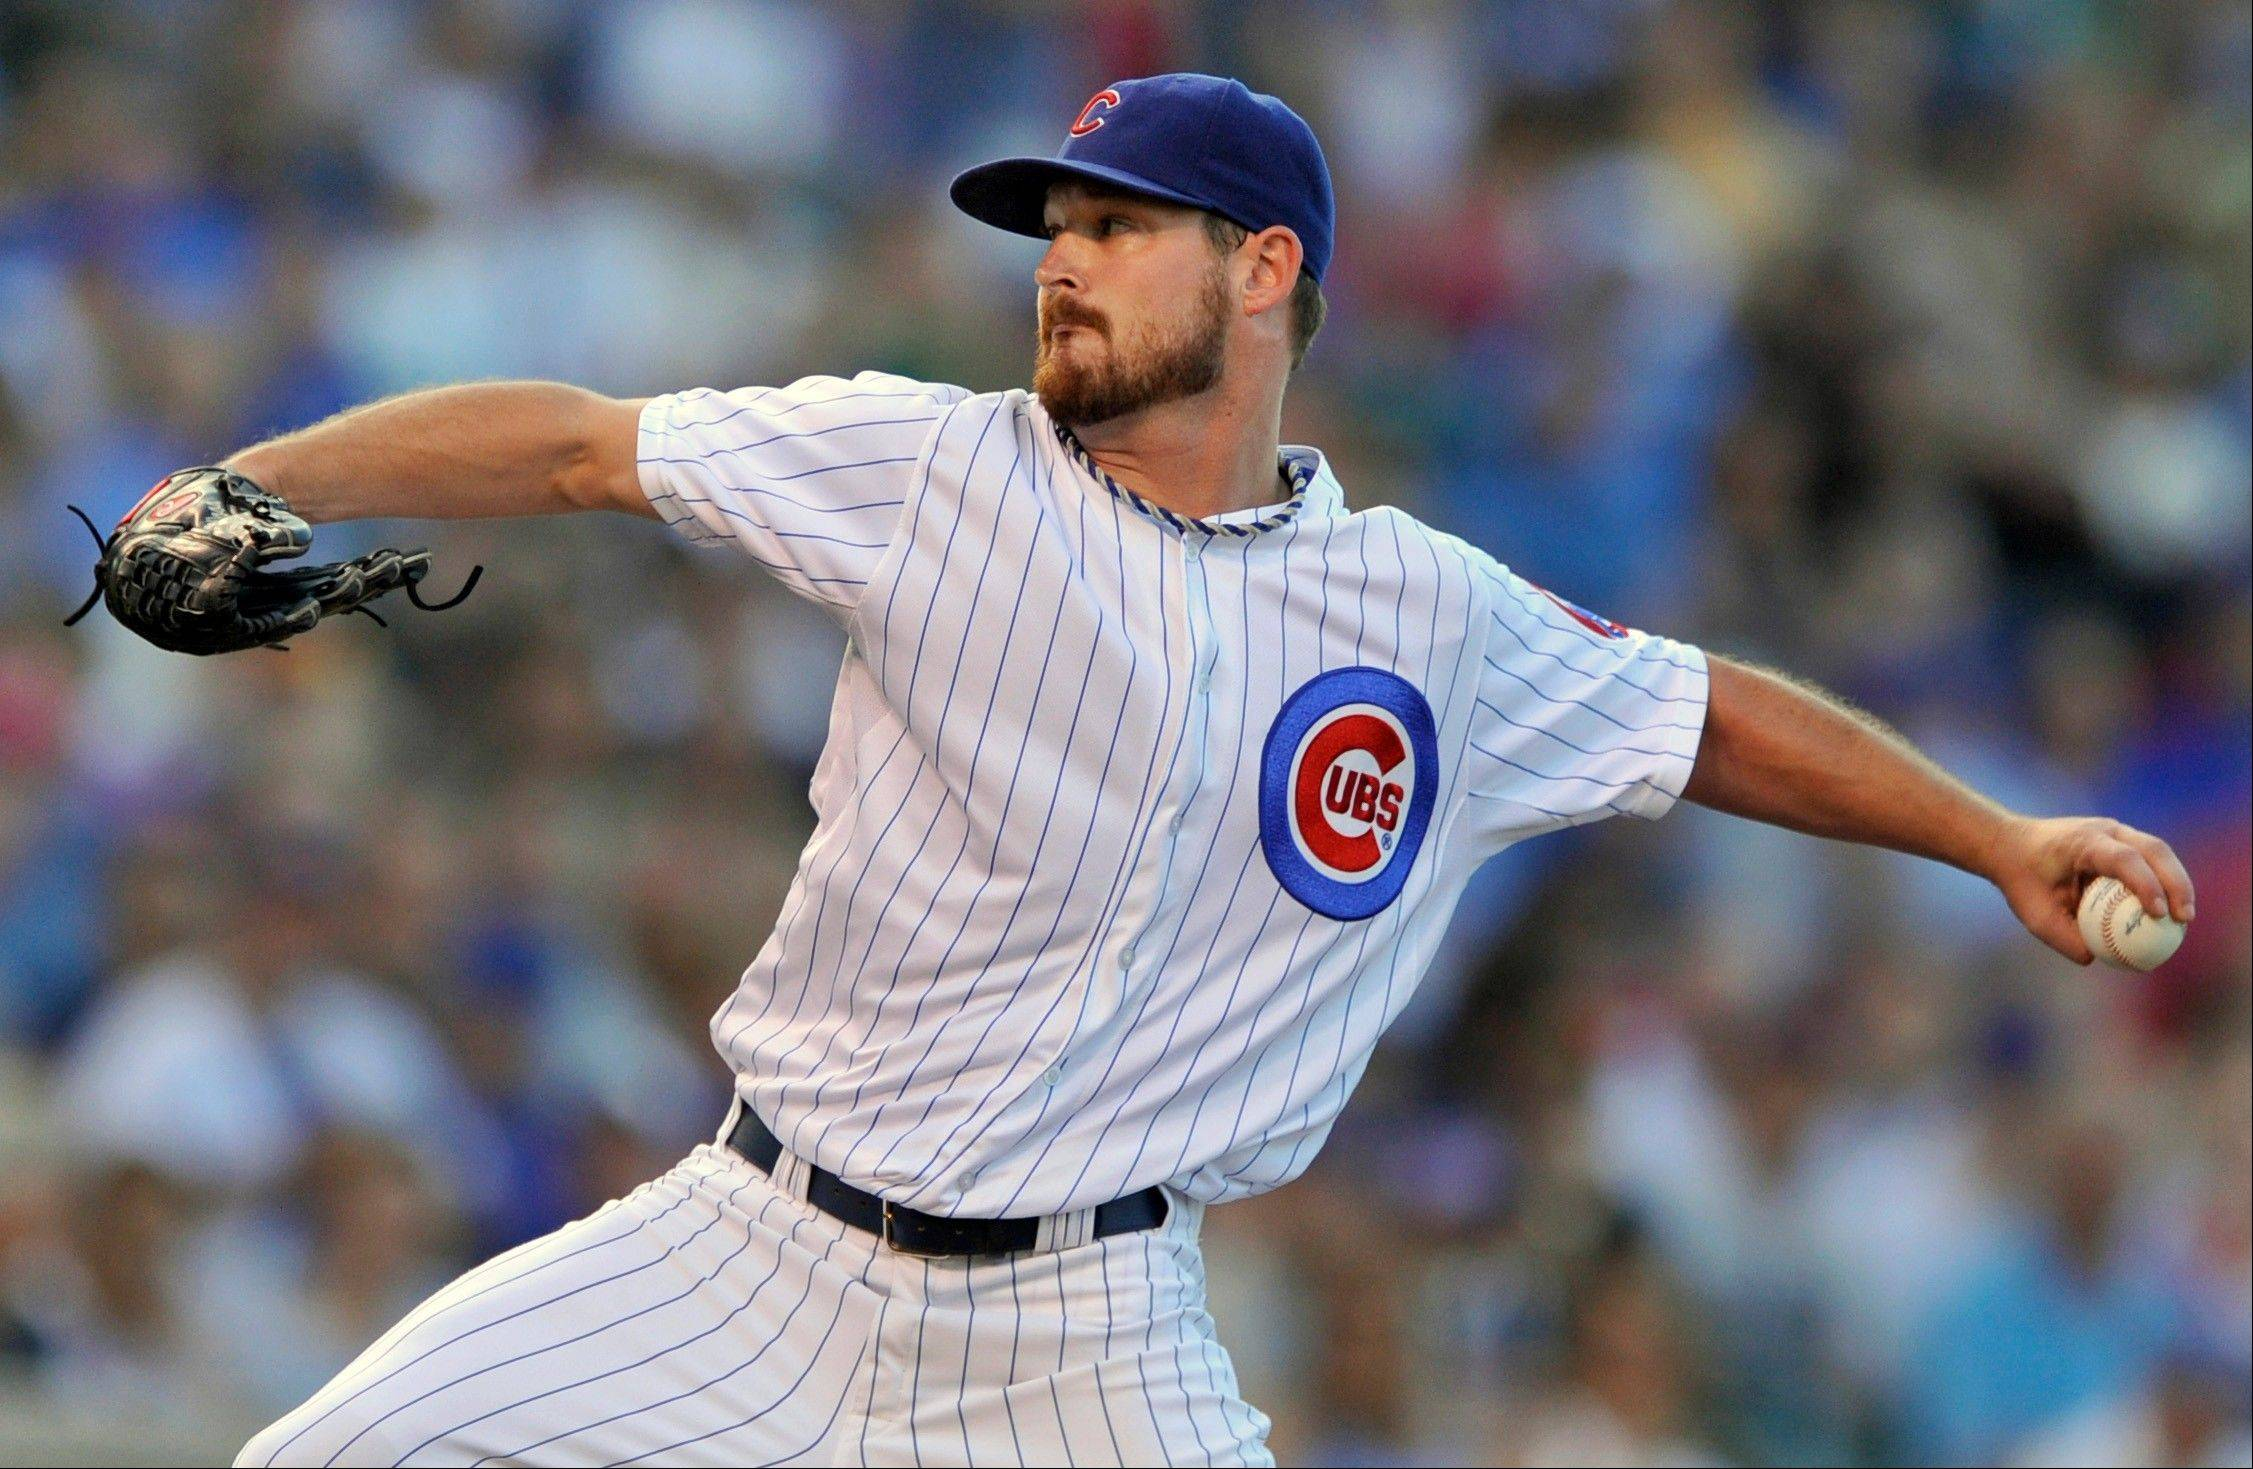 Cubs starter Travis Wood deals in Sunday's first inning at Wrigley Field.